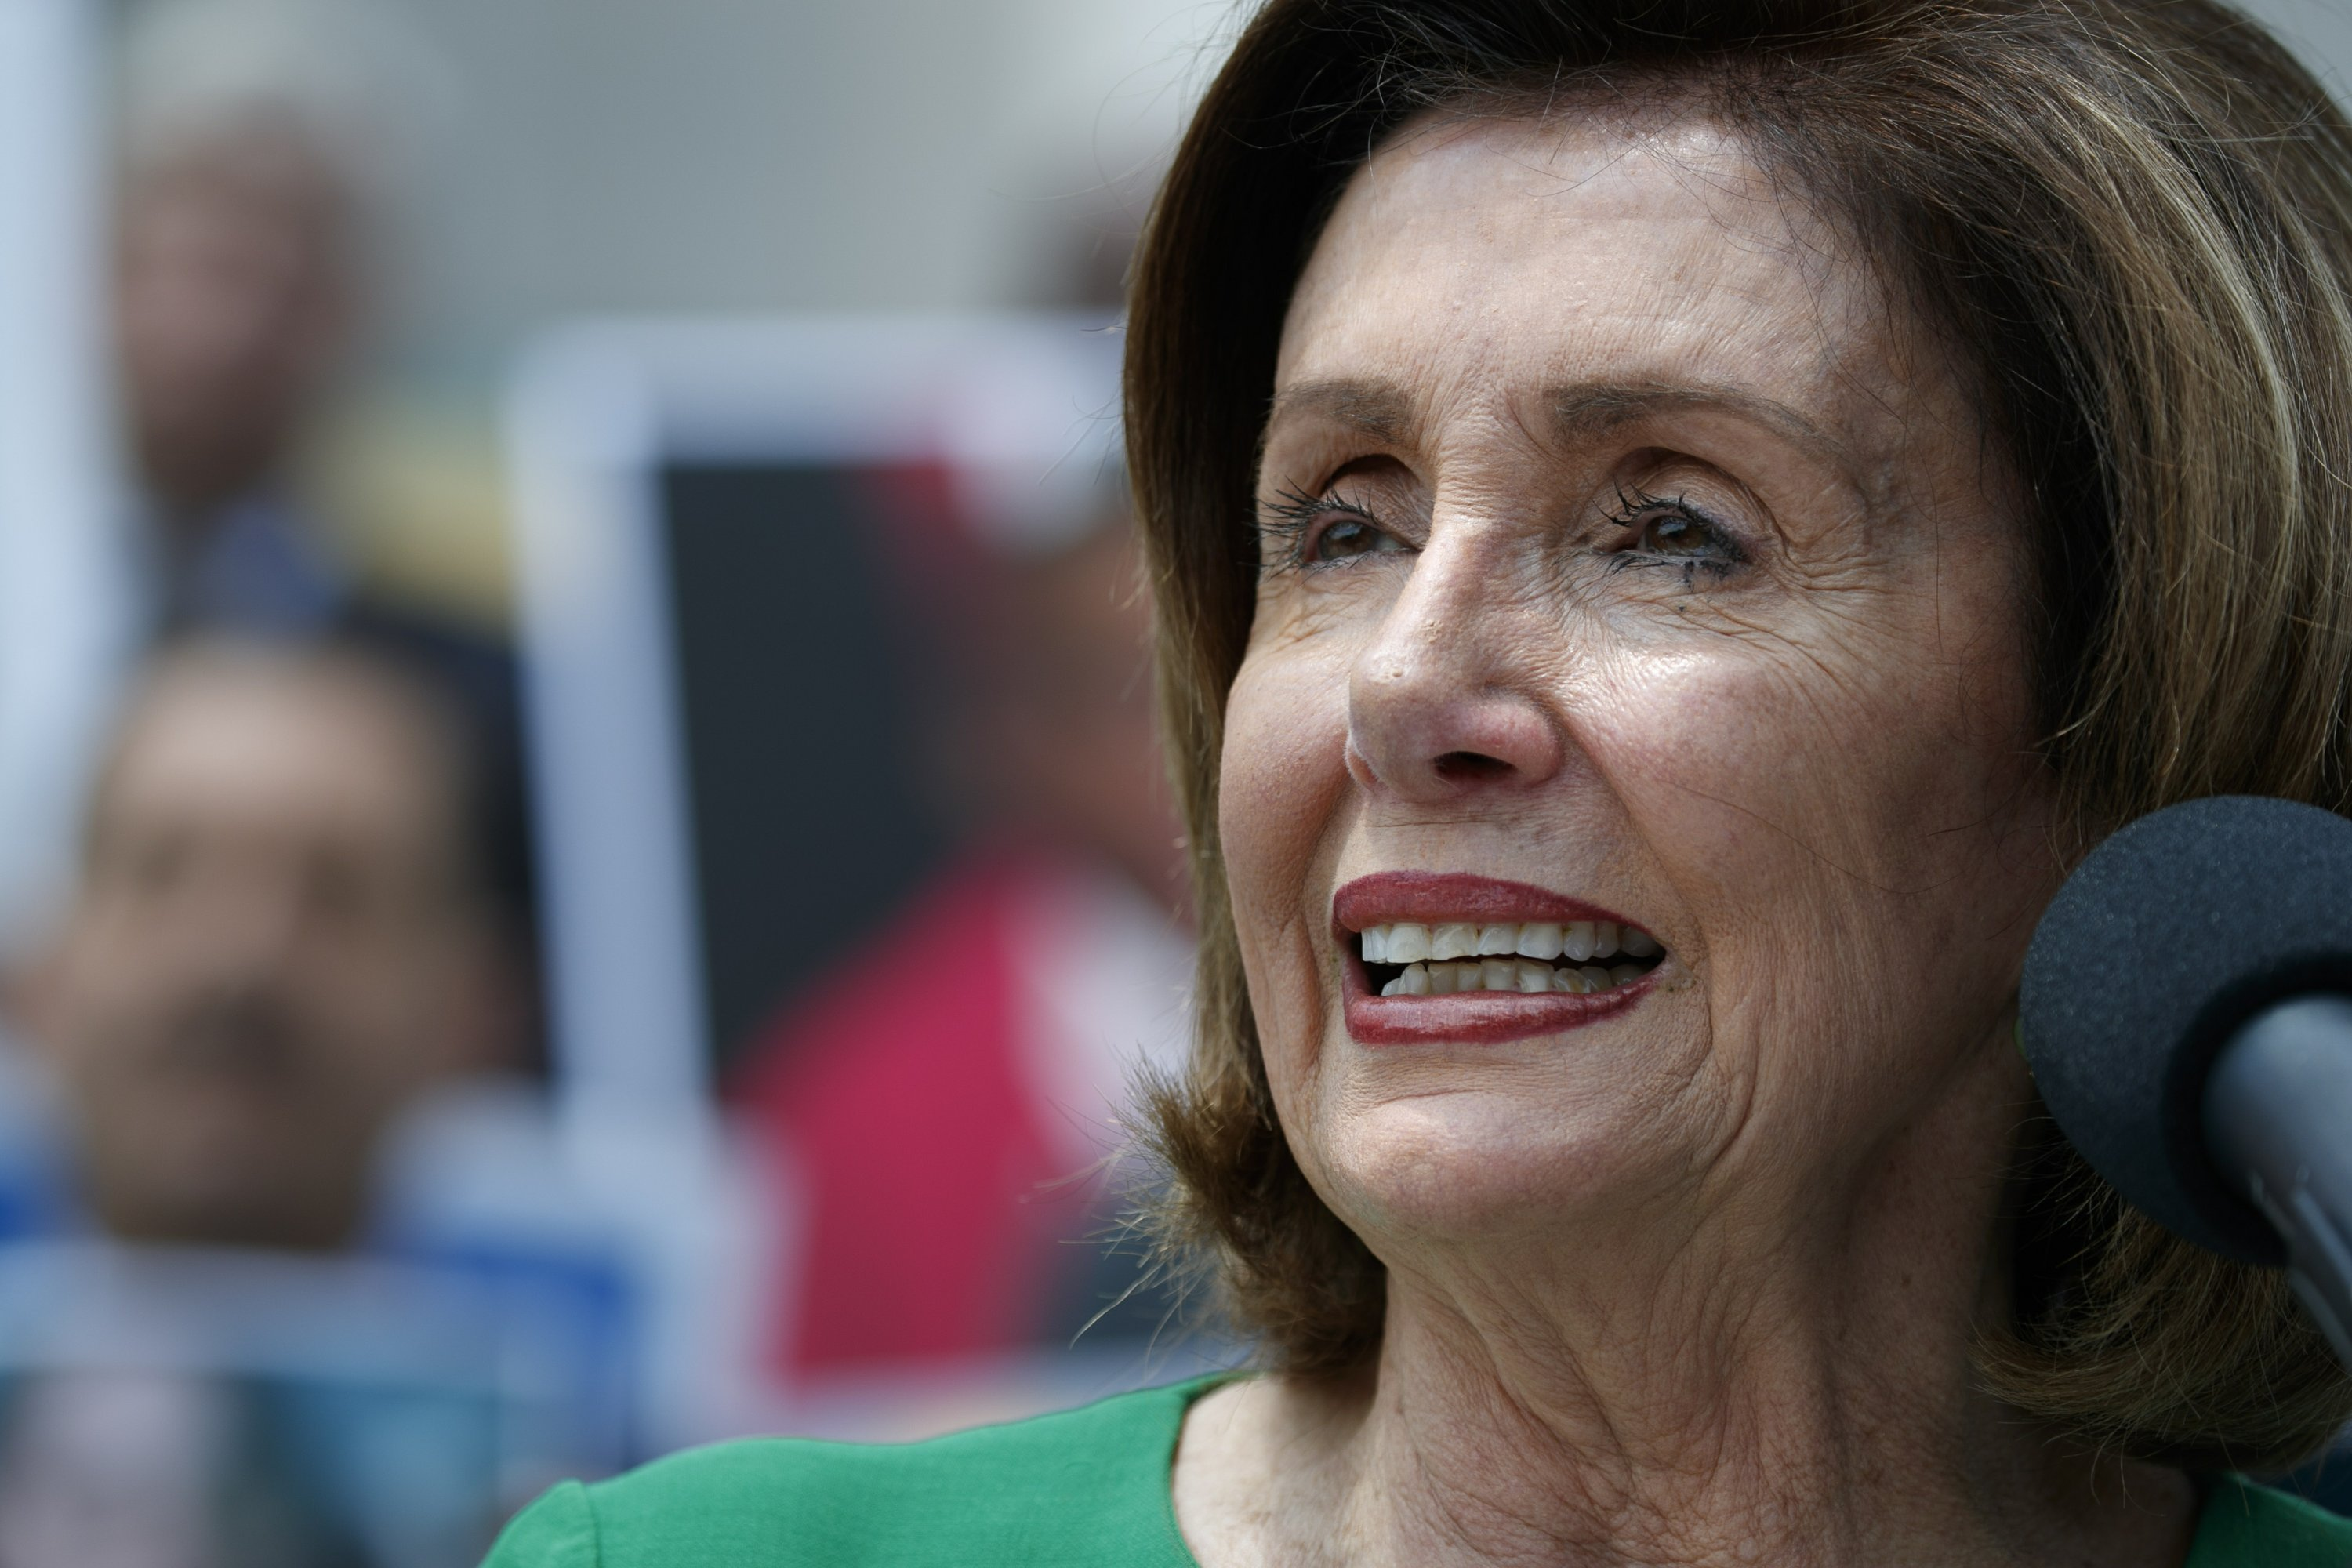 Pelosi feud with Ocasio-Cortez tests party heading into 2020